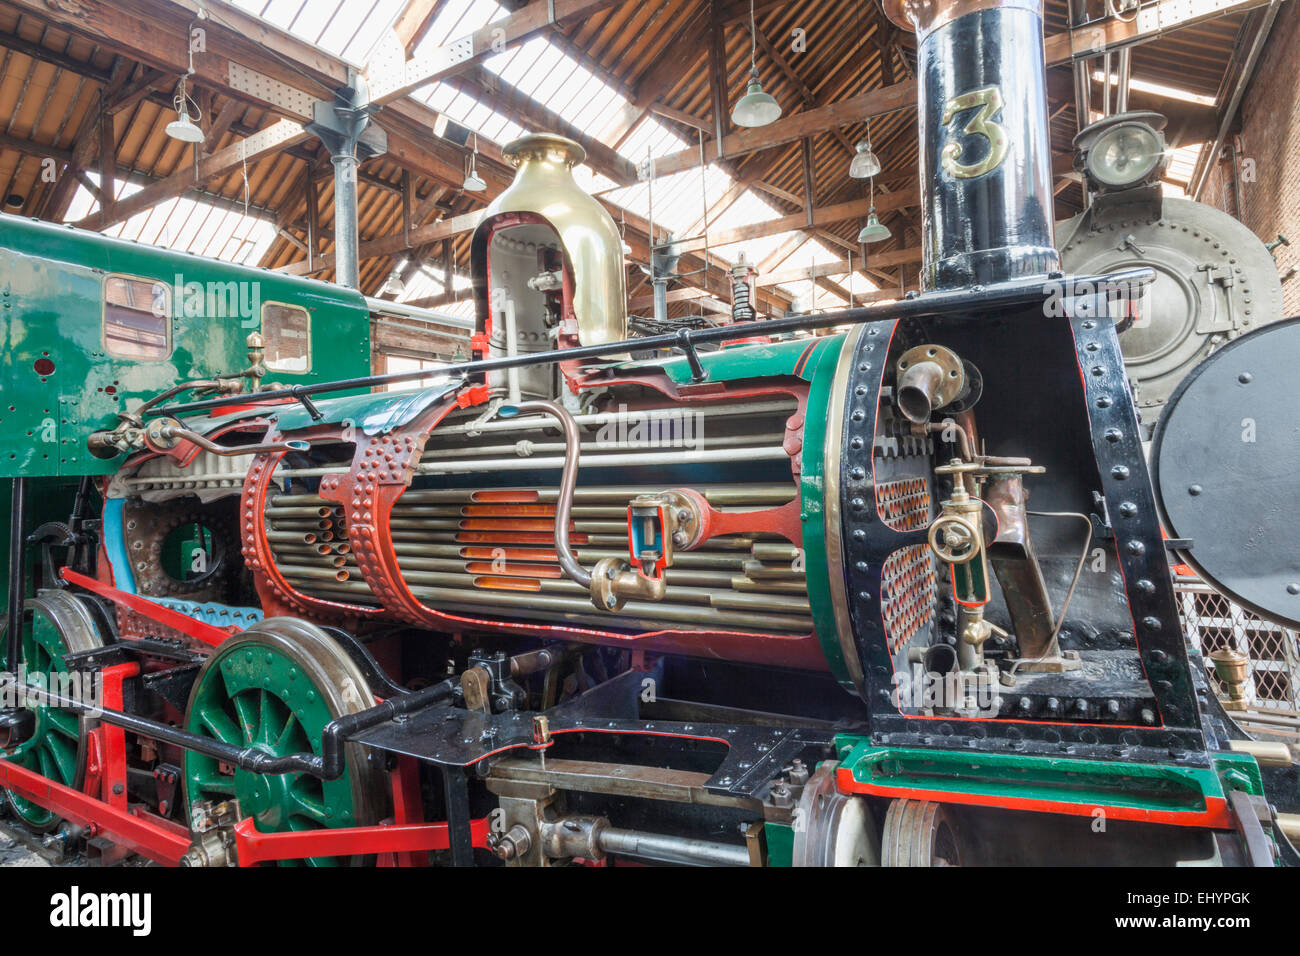 England, Manchester, city, Museum of Science and Industry aka MOSI, 'Beyer Peacock'Locomotive built 1873 - Stock Image